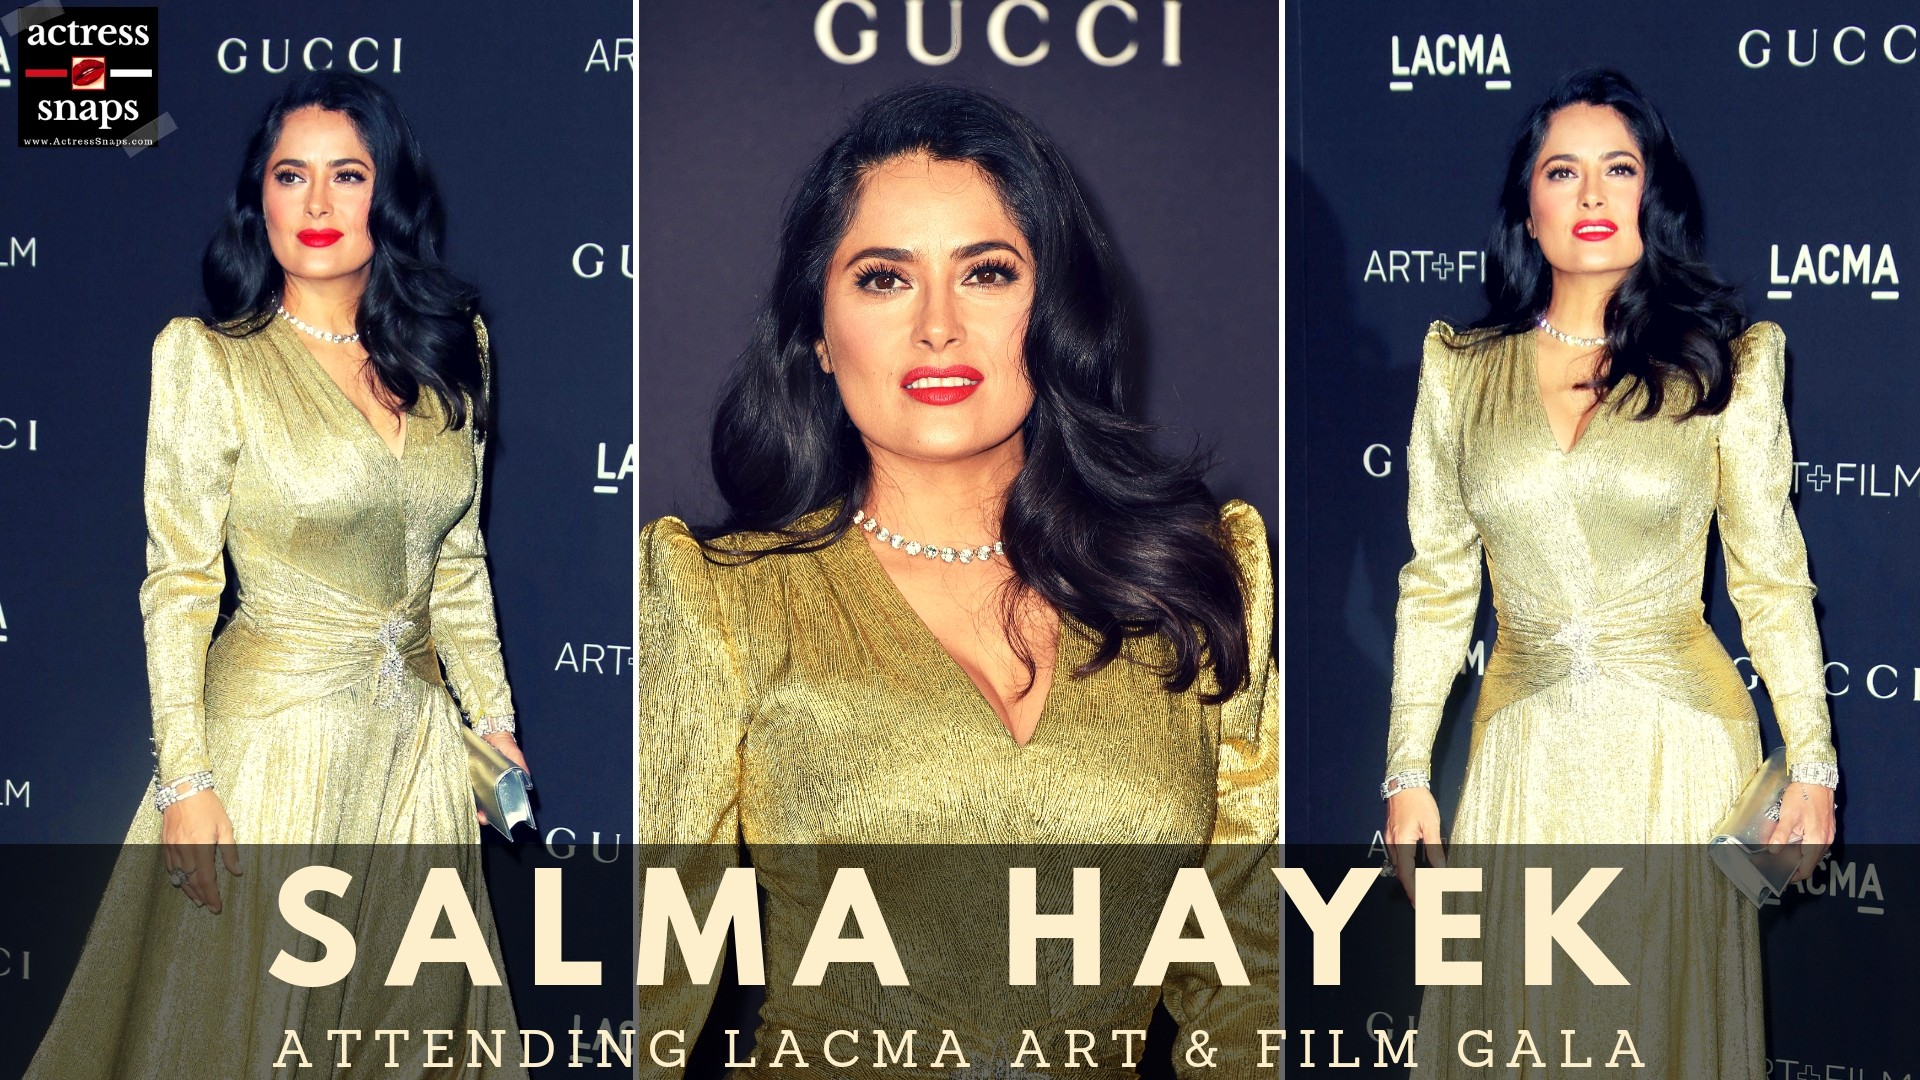 Salma Hayek Pictures from LACMA Event - Sexy Actress Pictures | Hot Actress Pictures - ActressSnaps.com